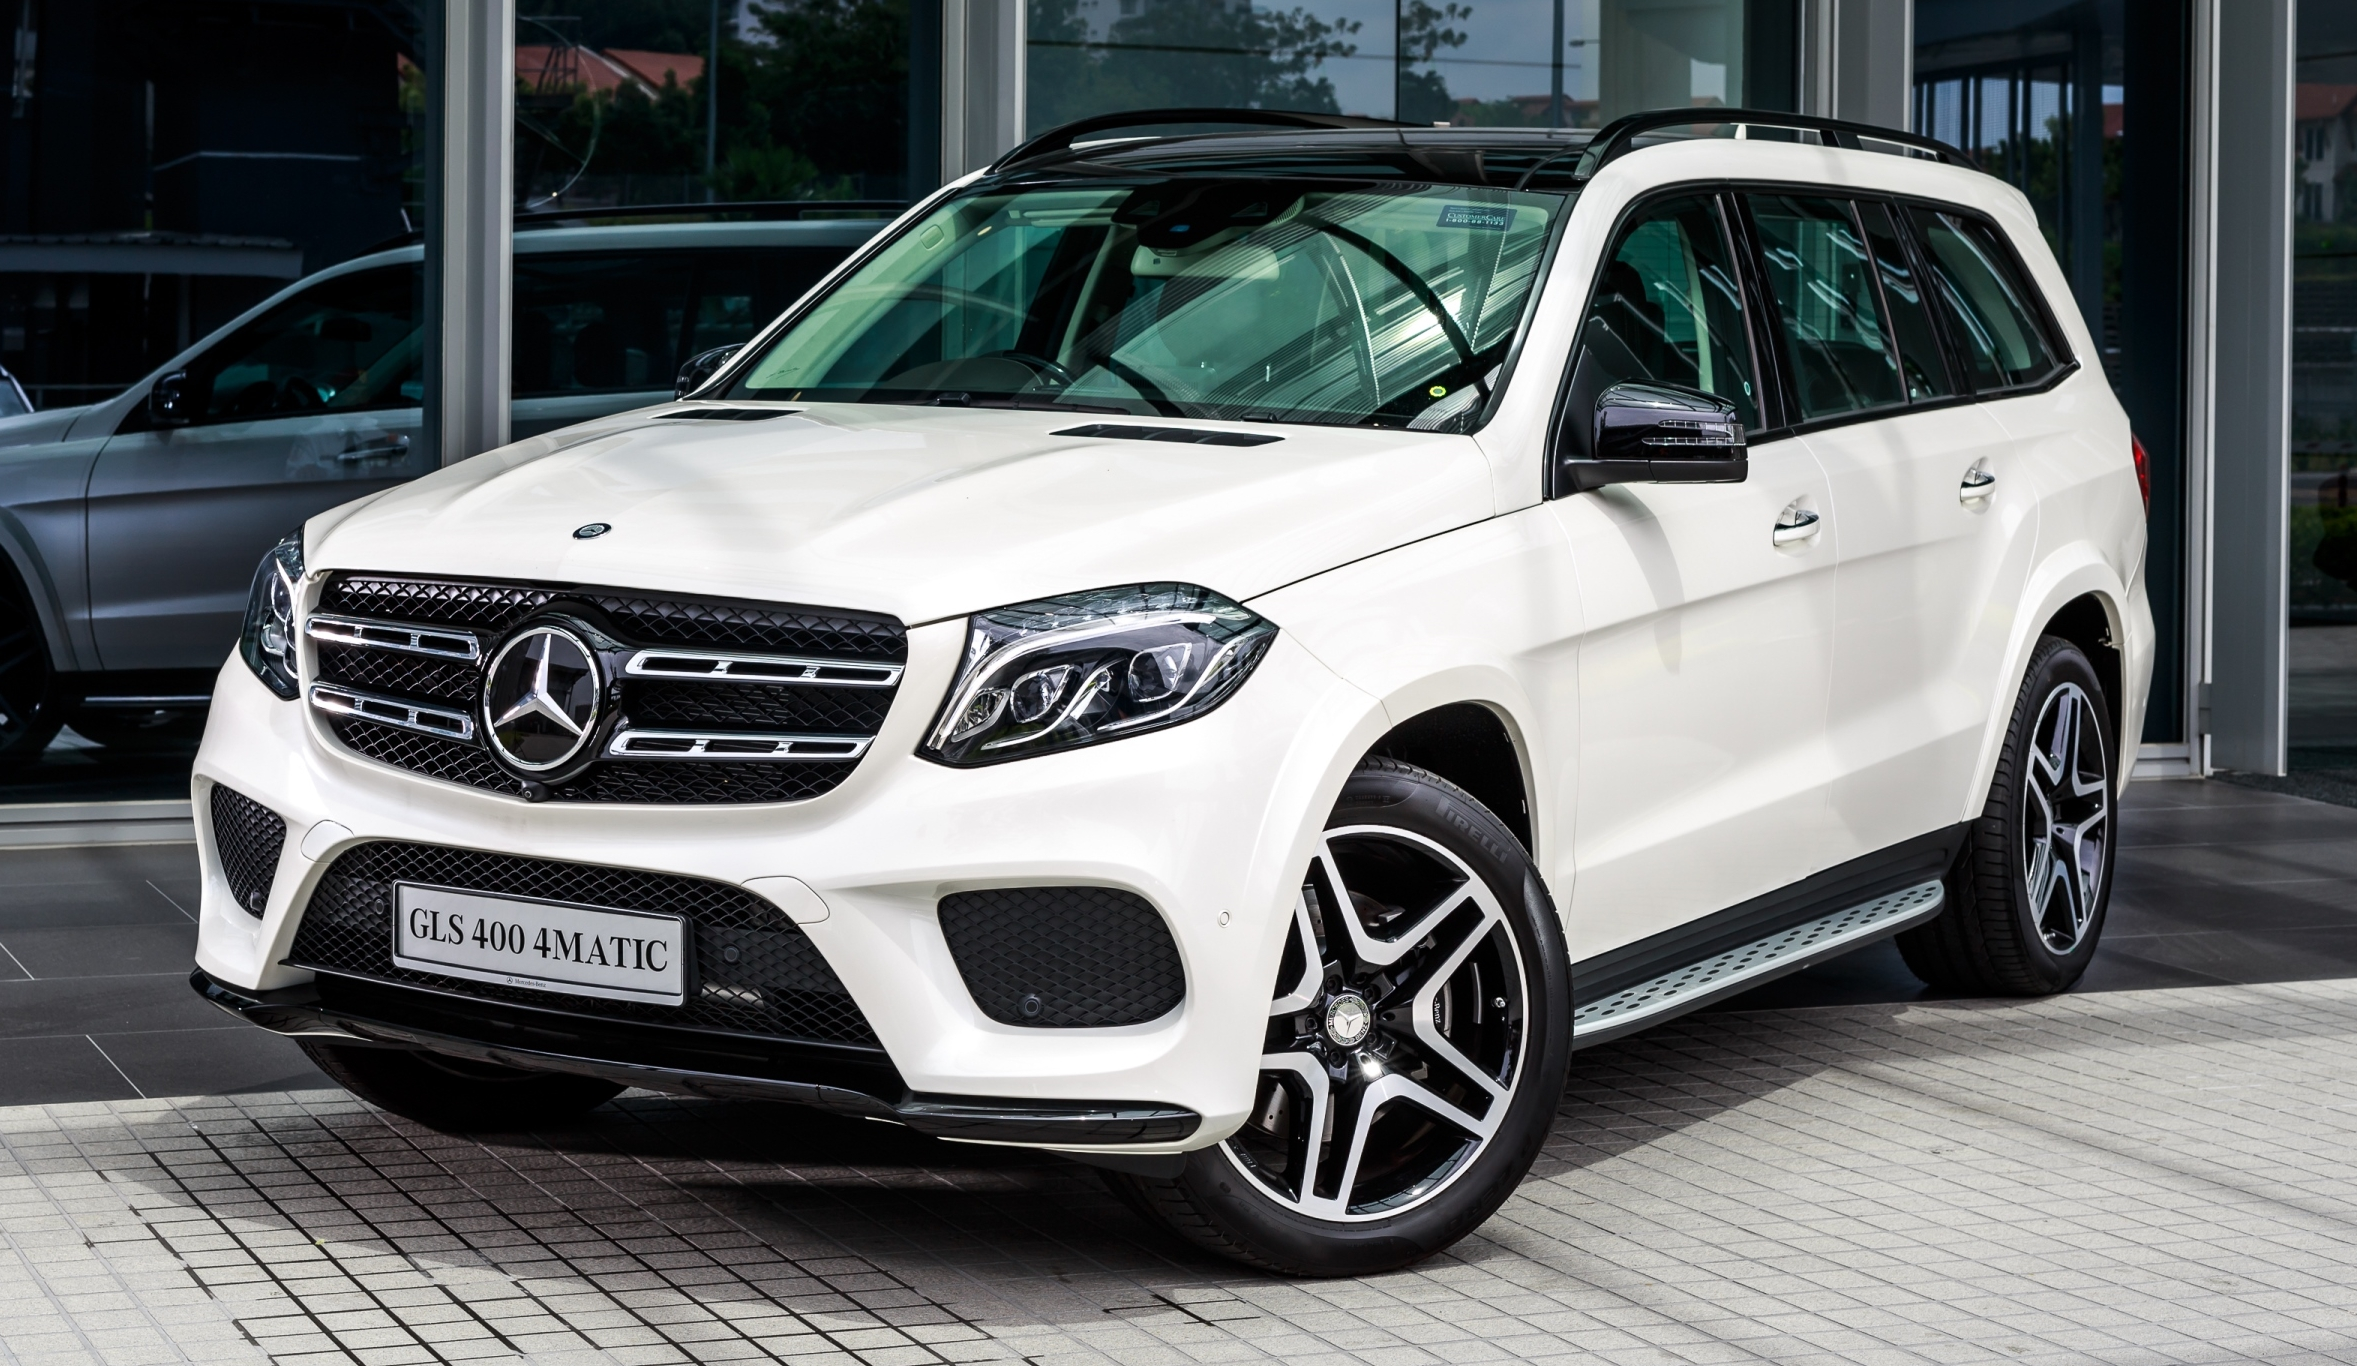 mercedes benz gls 400 4matic launched rm889k. Black Bedroom Furniture Sets. Home Design Ideas